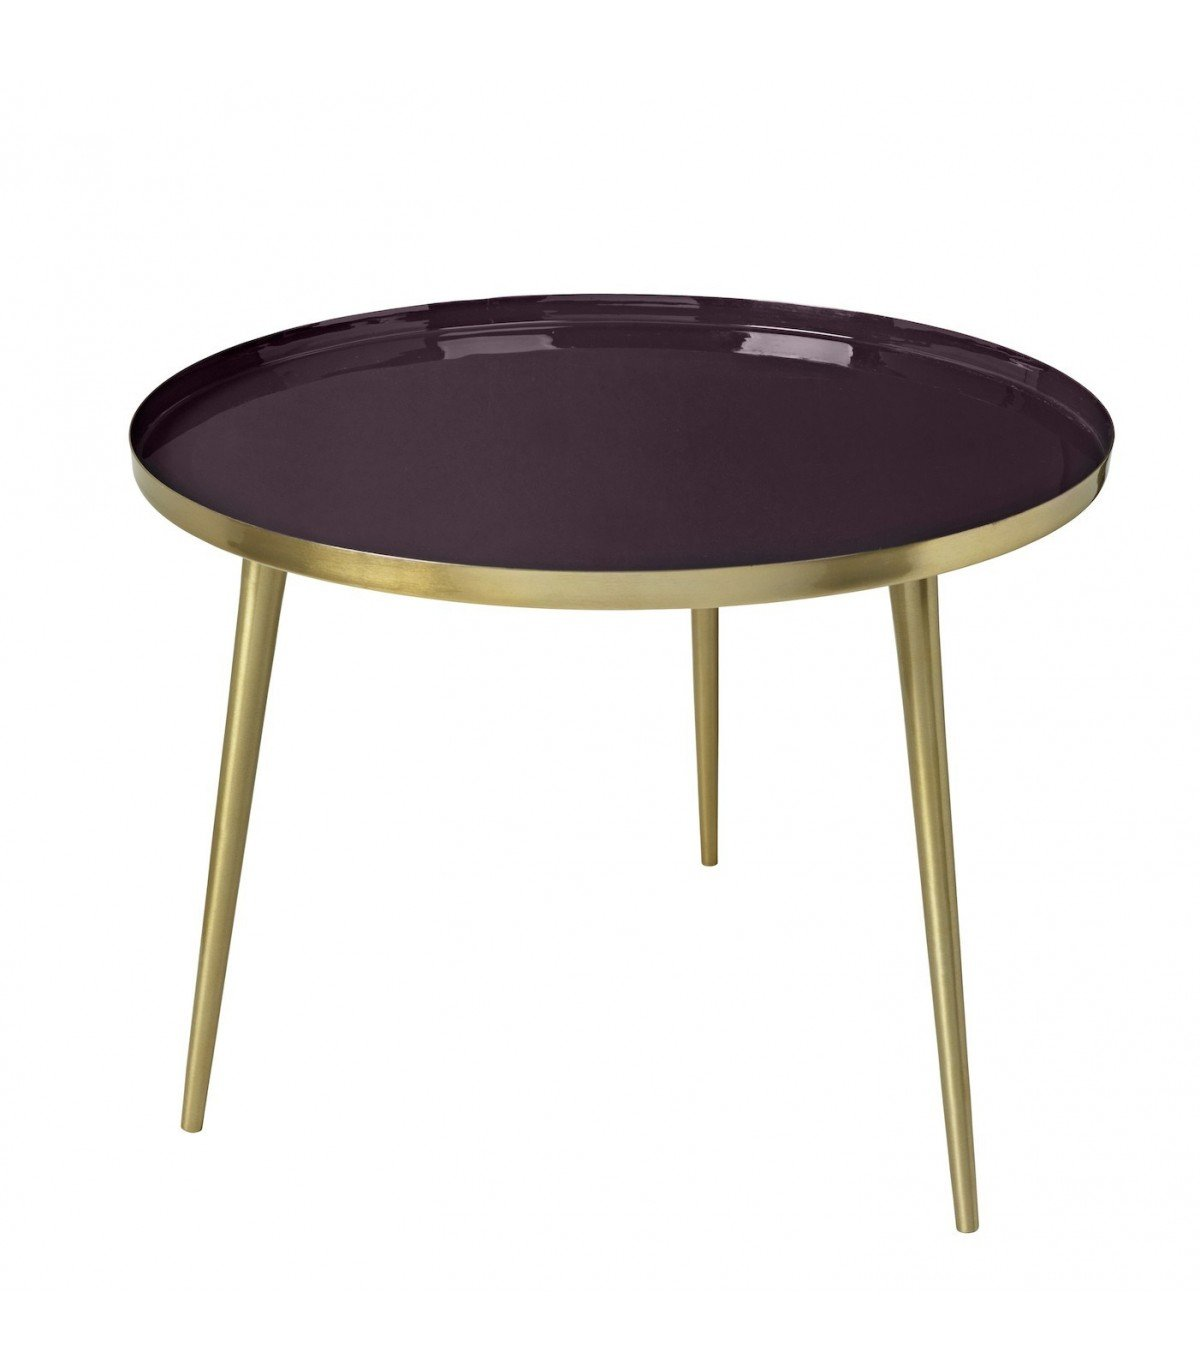 Tabouret bar aubergine gallery of chaise versailles chne - Tabouret bar aubergine ...